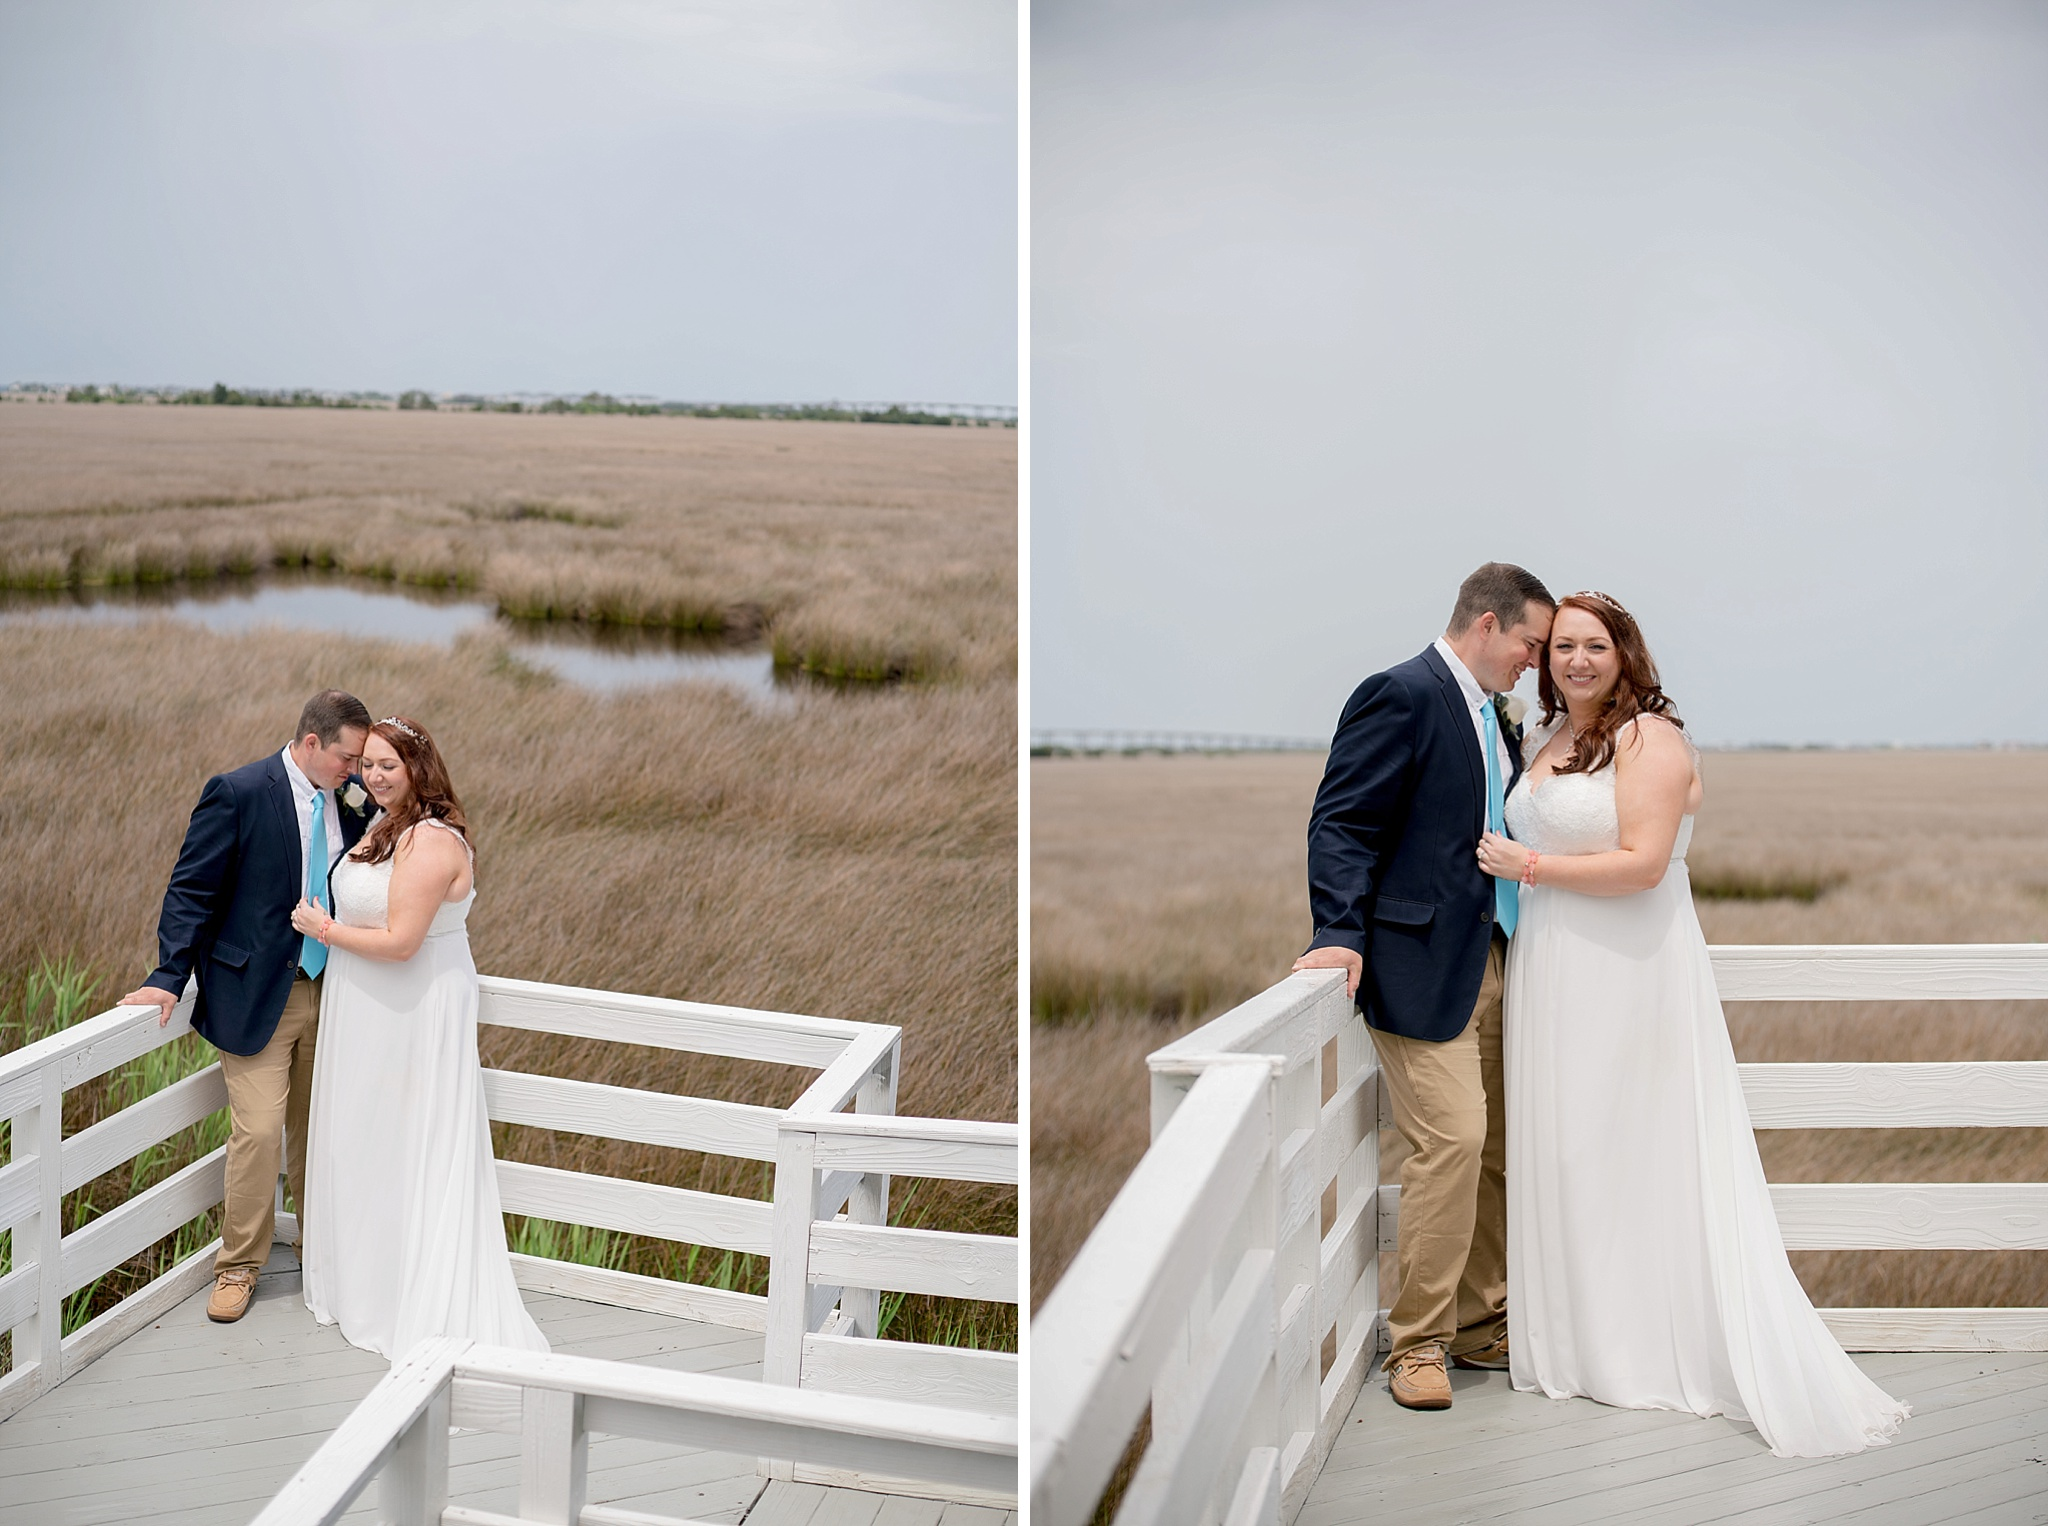 Manteo-NC-Wedding-Photographer-139.jpg